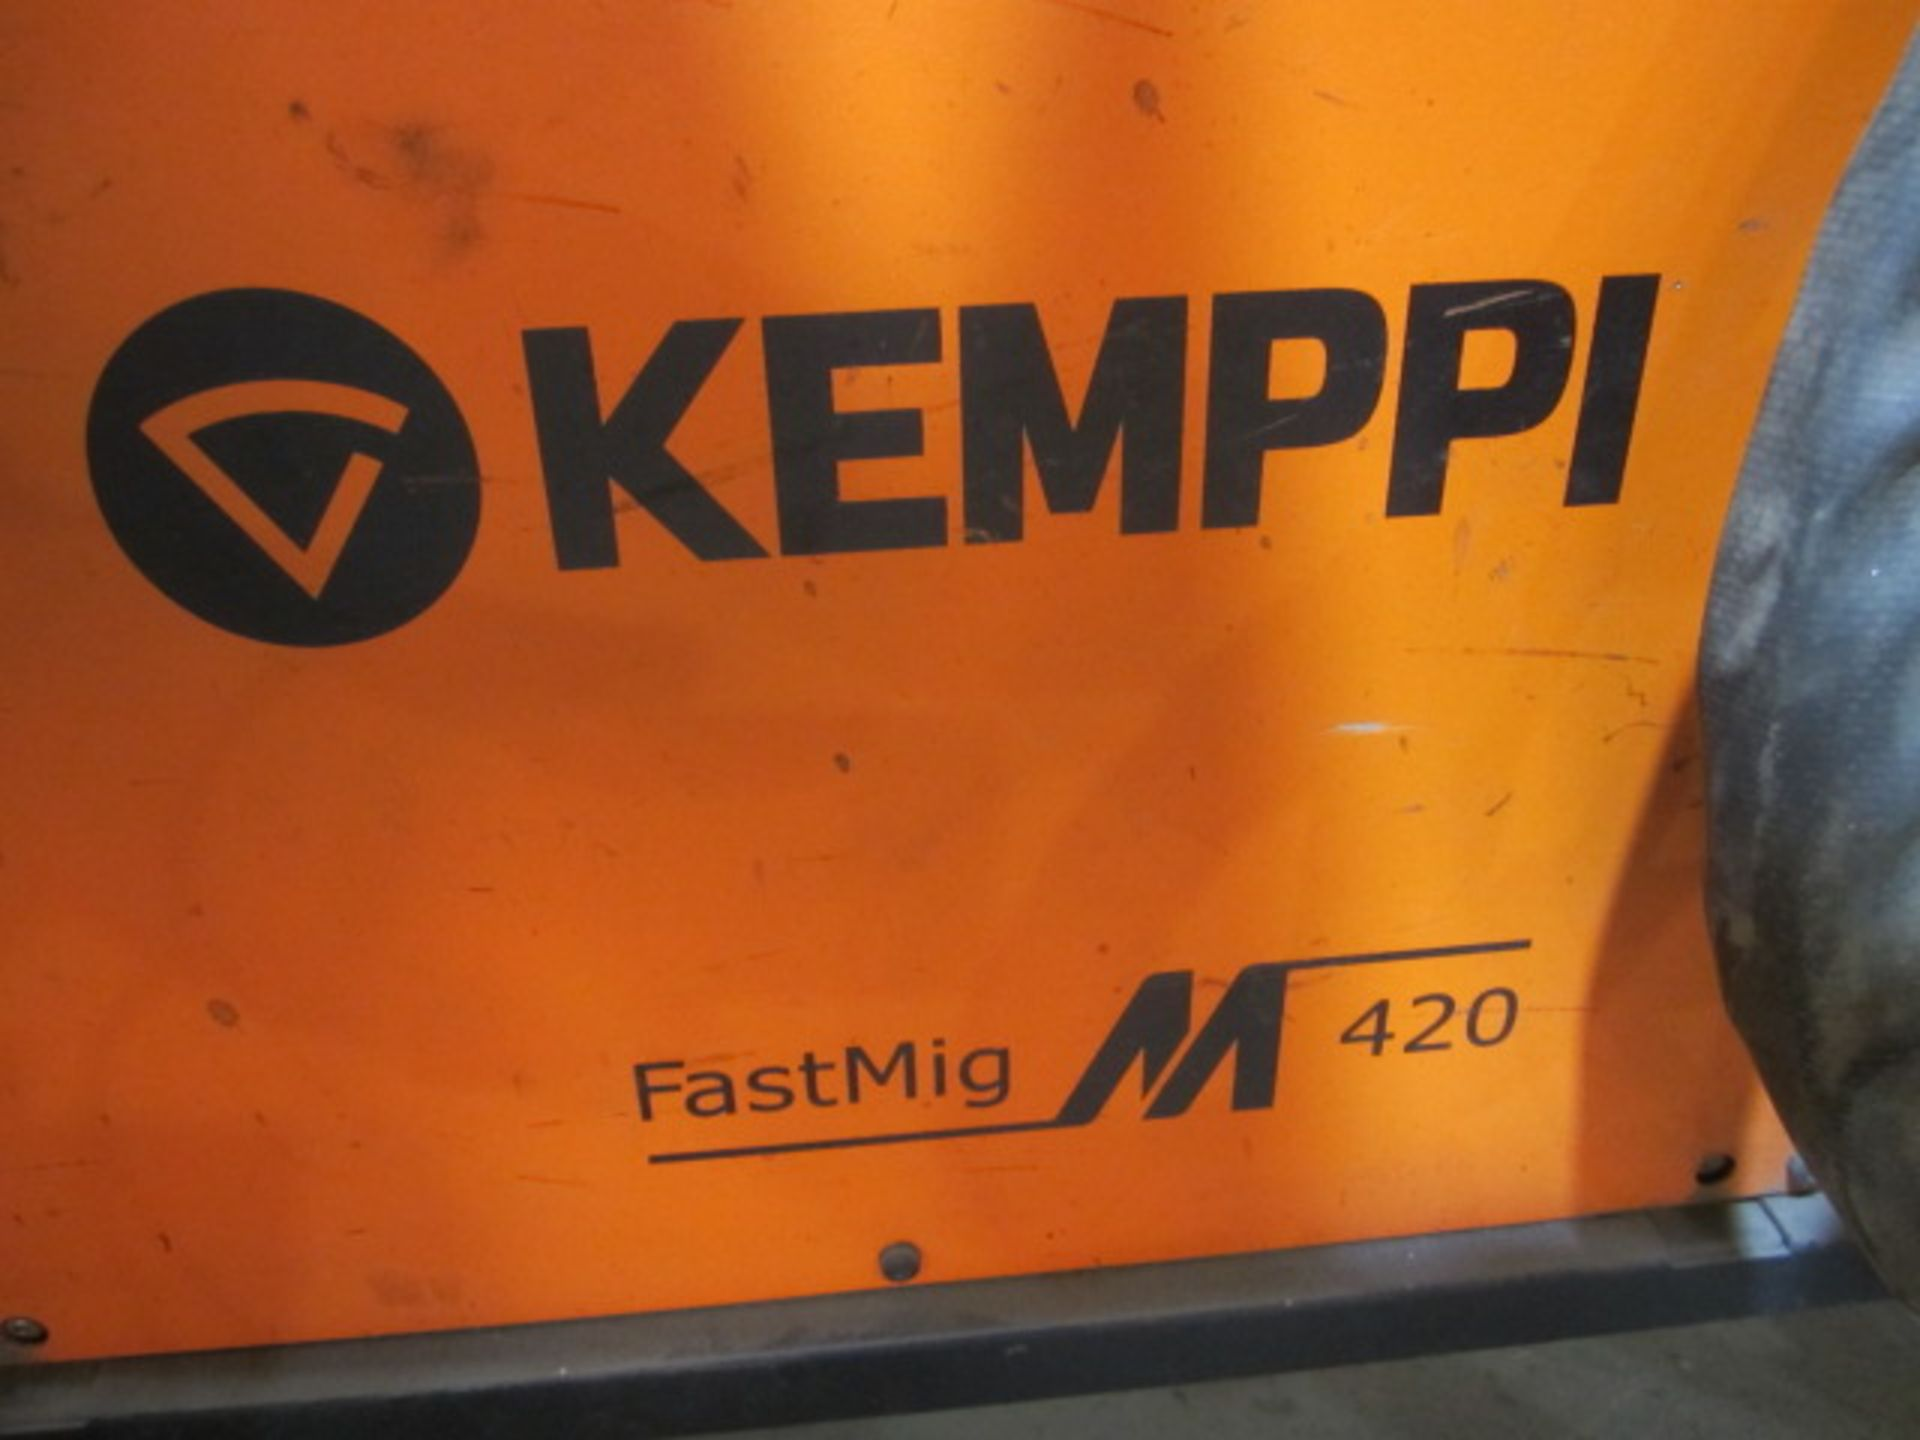 Kemppi Fast Mig M420 mig welder, serial no. 2694678, with Fast Mig MXF65 wire feeder, serial no. - Image 5 of 7